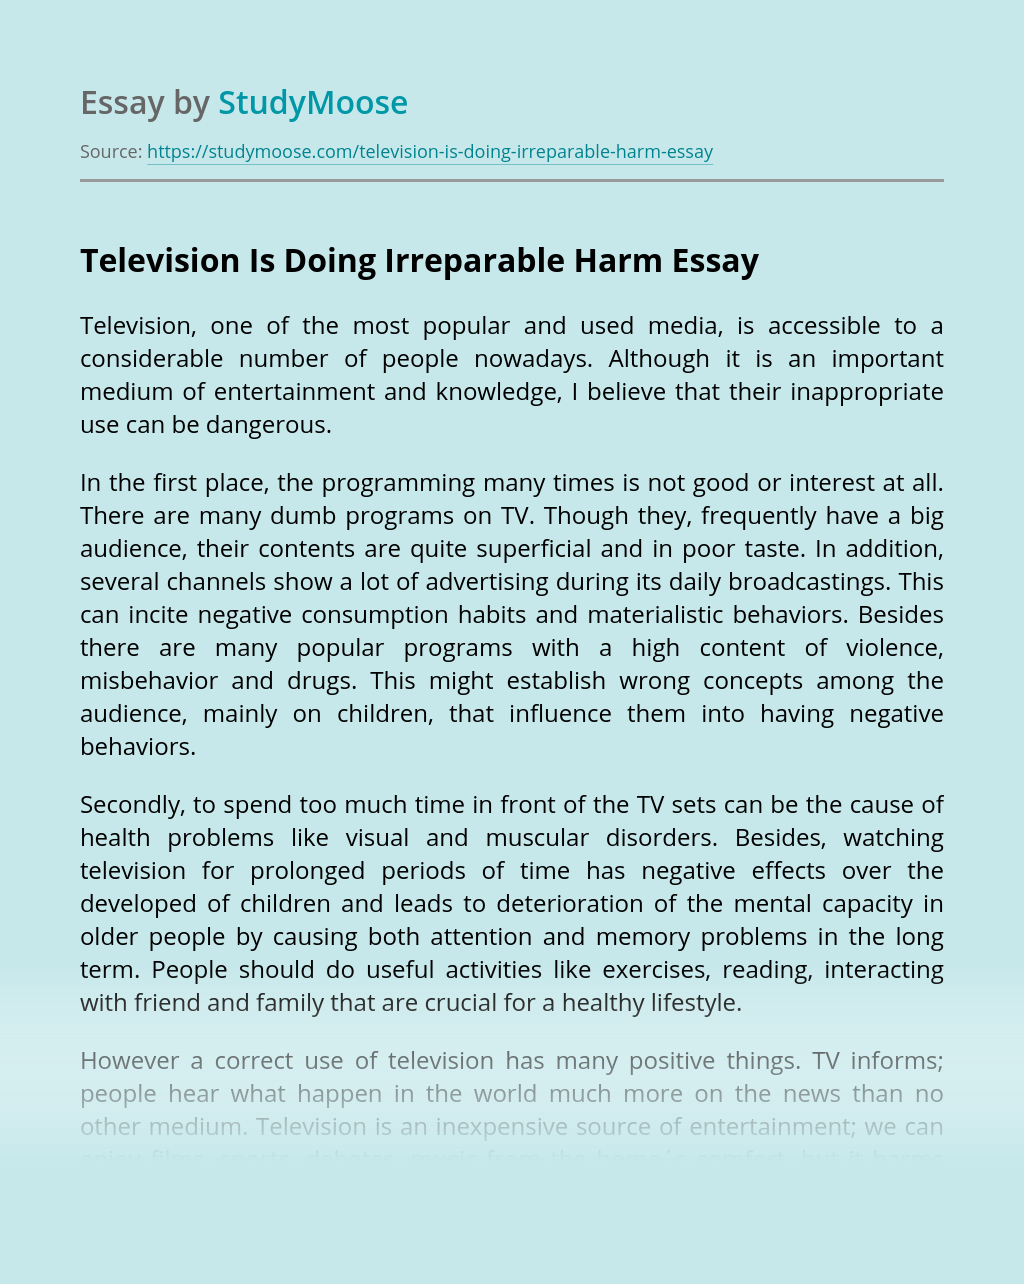 Television Is Doing Irreparable Harm